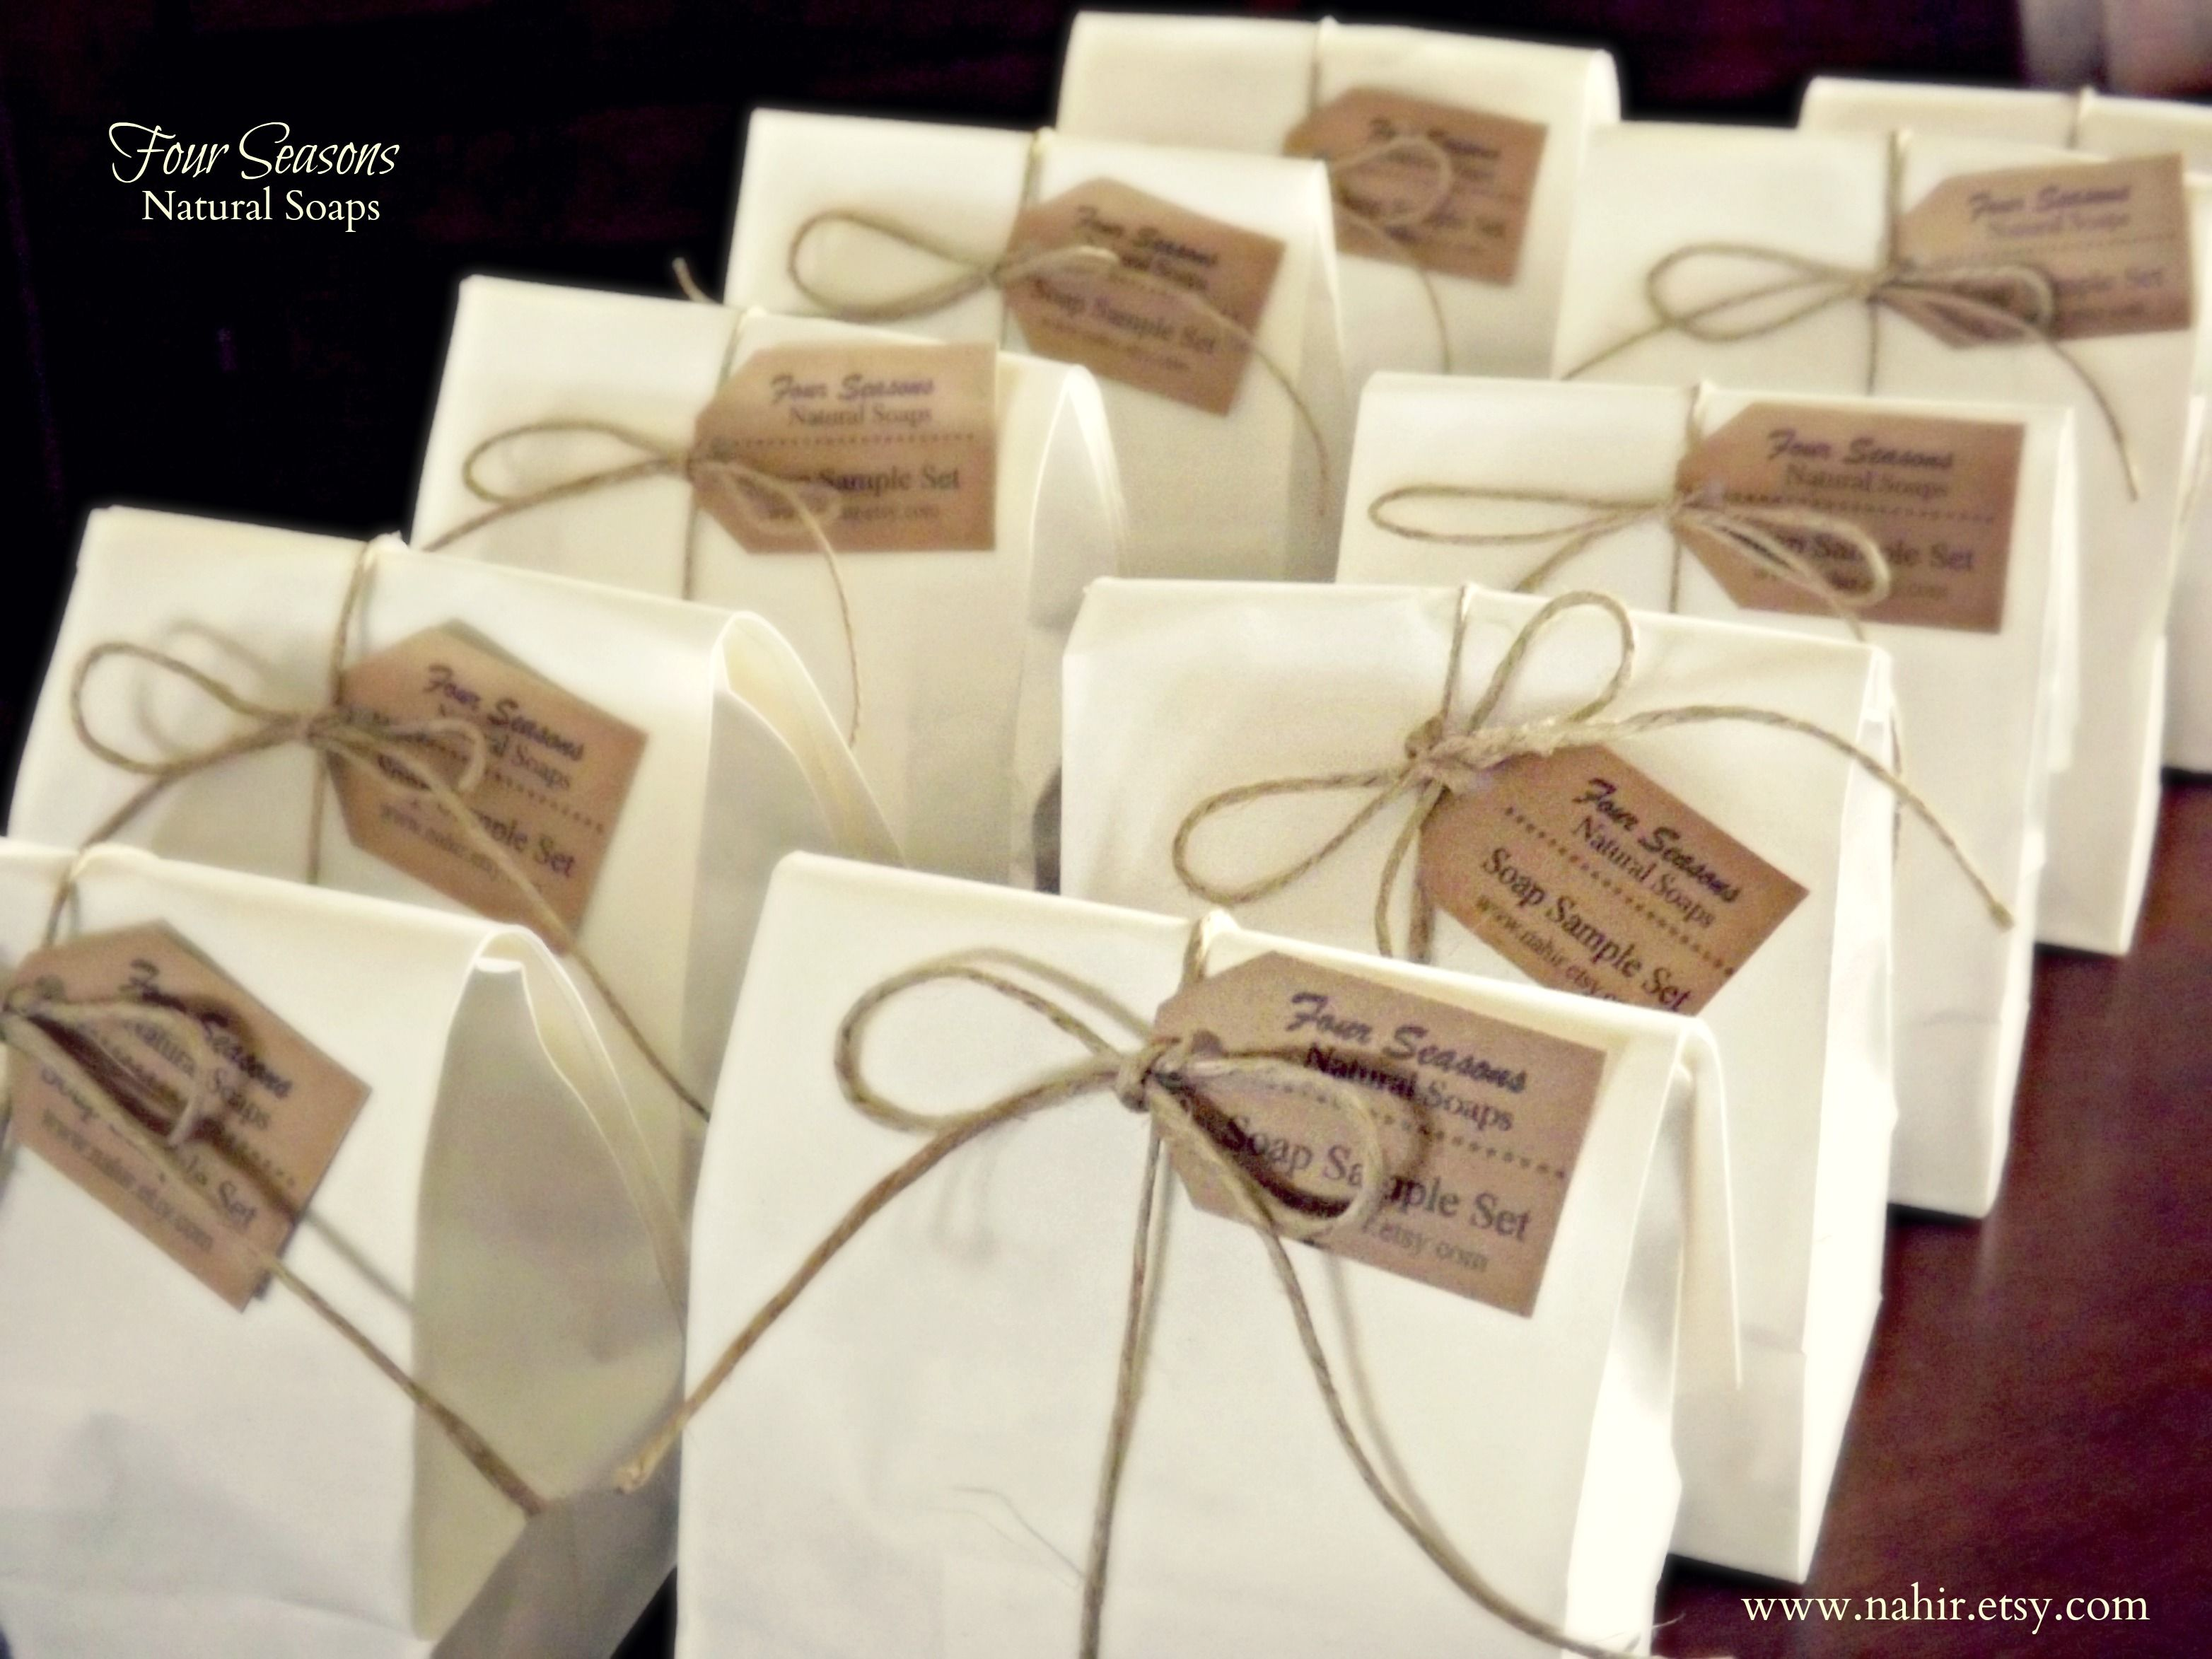 Soap Sample Bag... Rustic Packaging | Four Seasons Natural Soaps ...